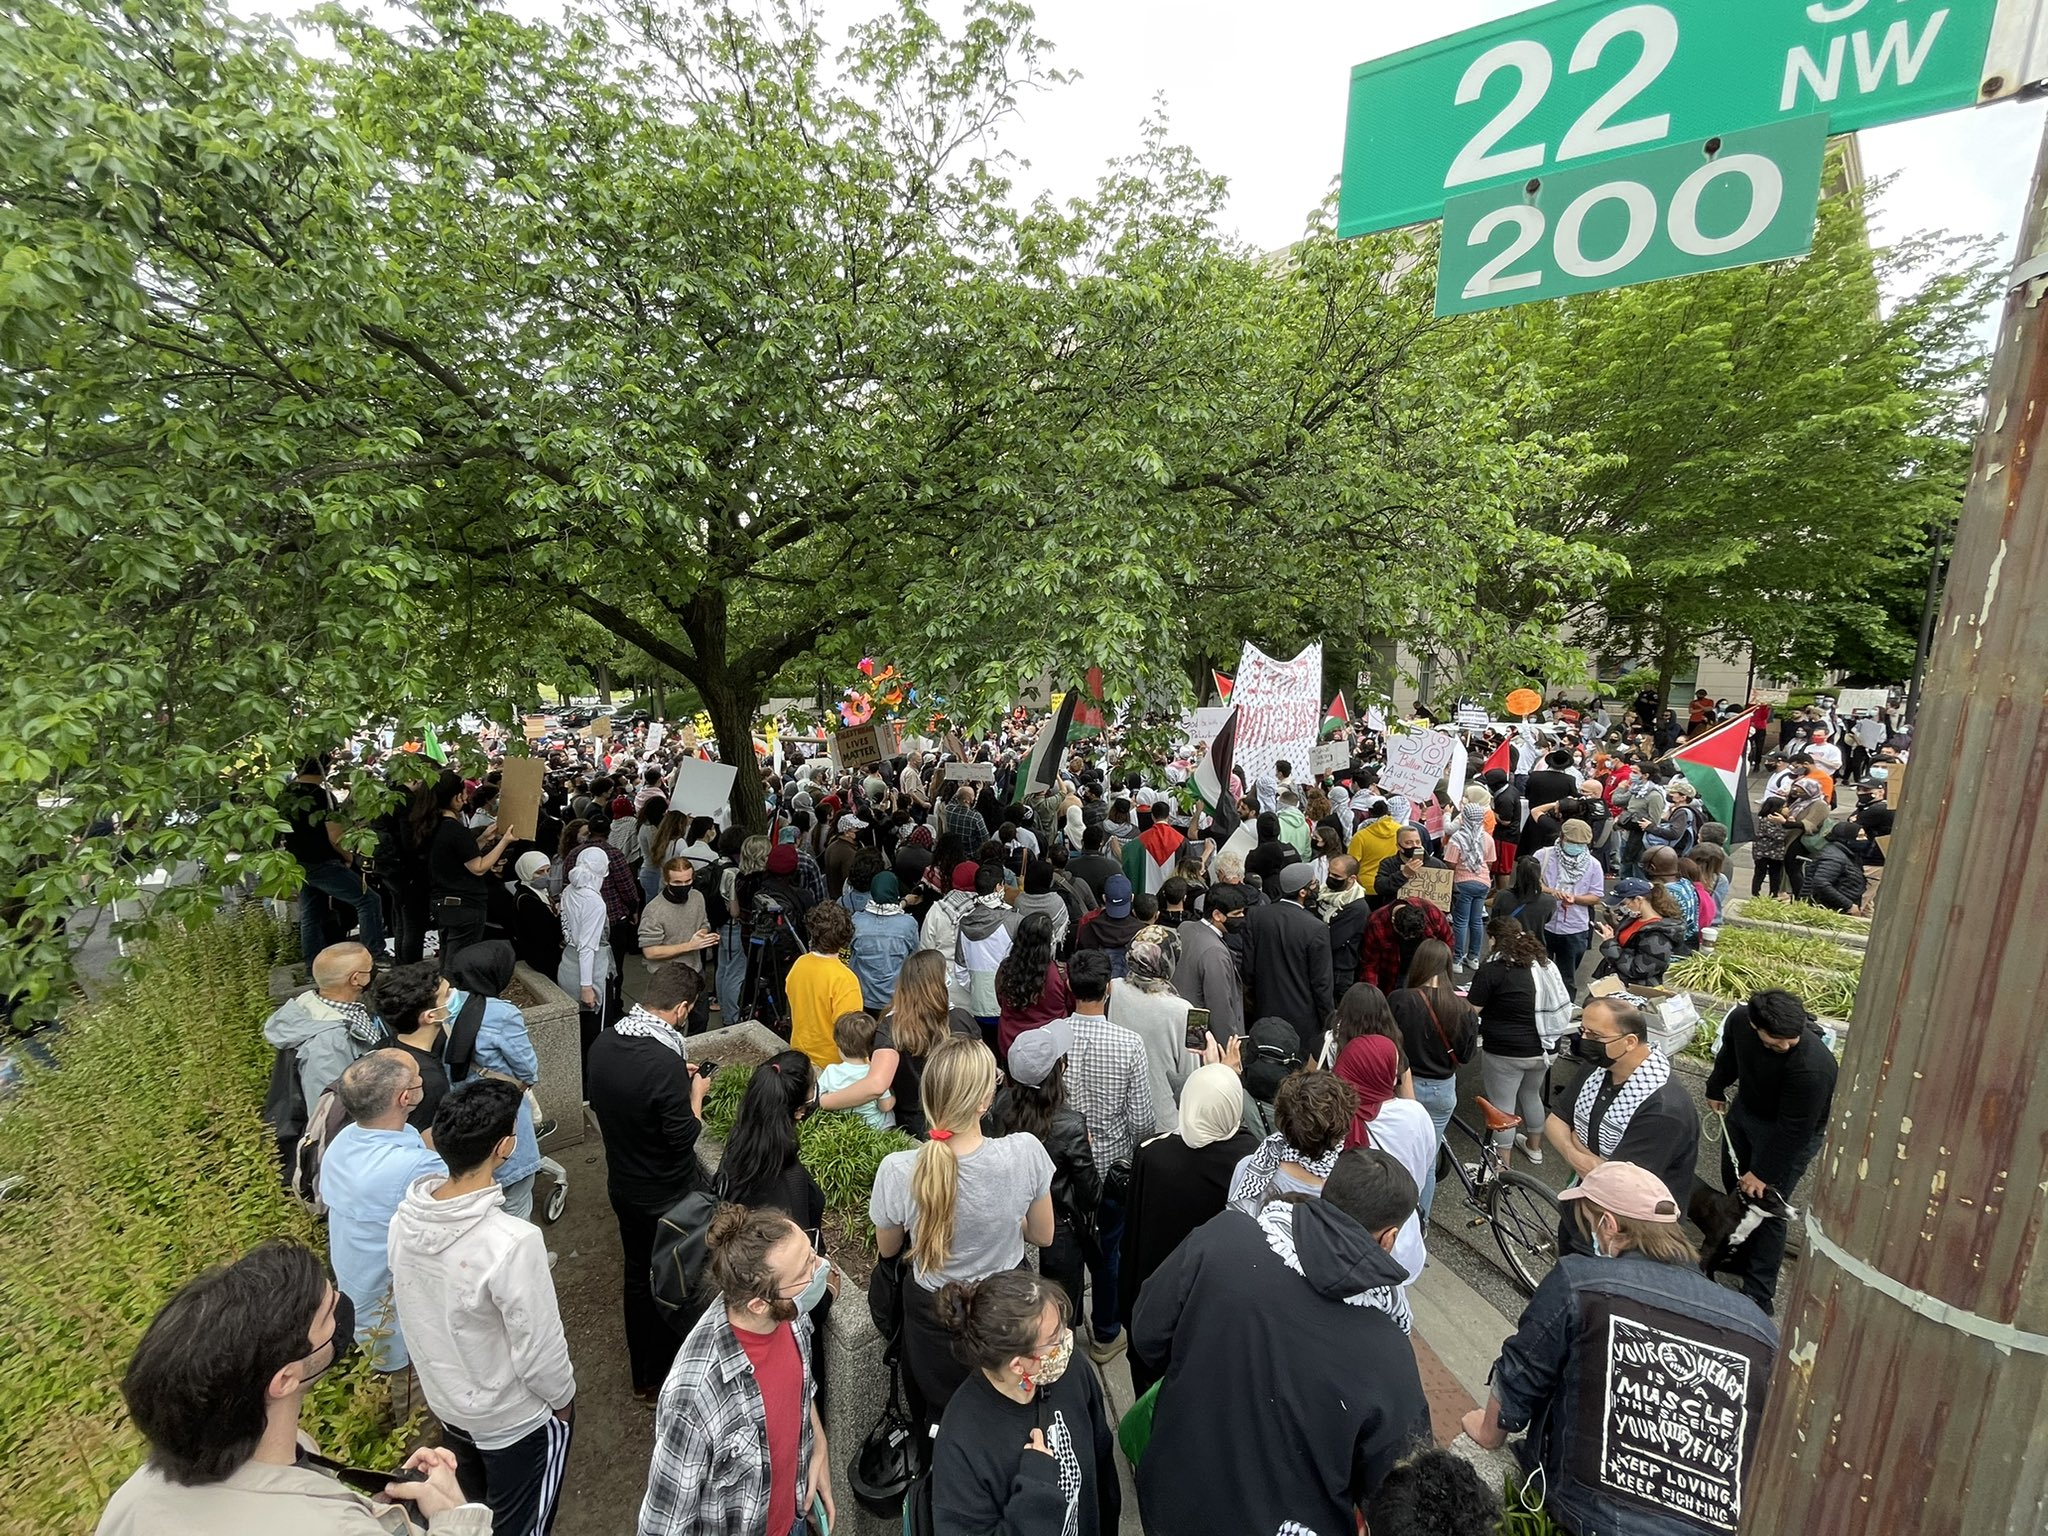 Hundreds in Washington D.C. Protest in Solidarity With Palestine